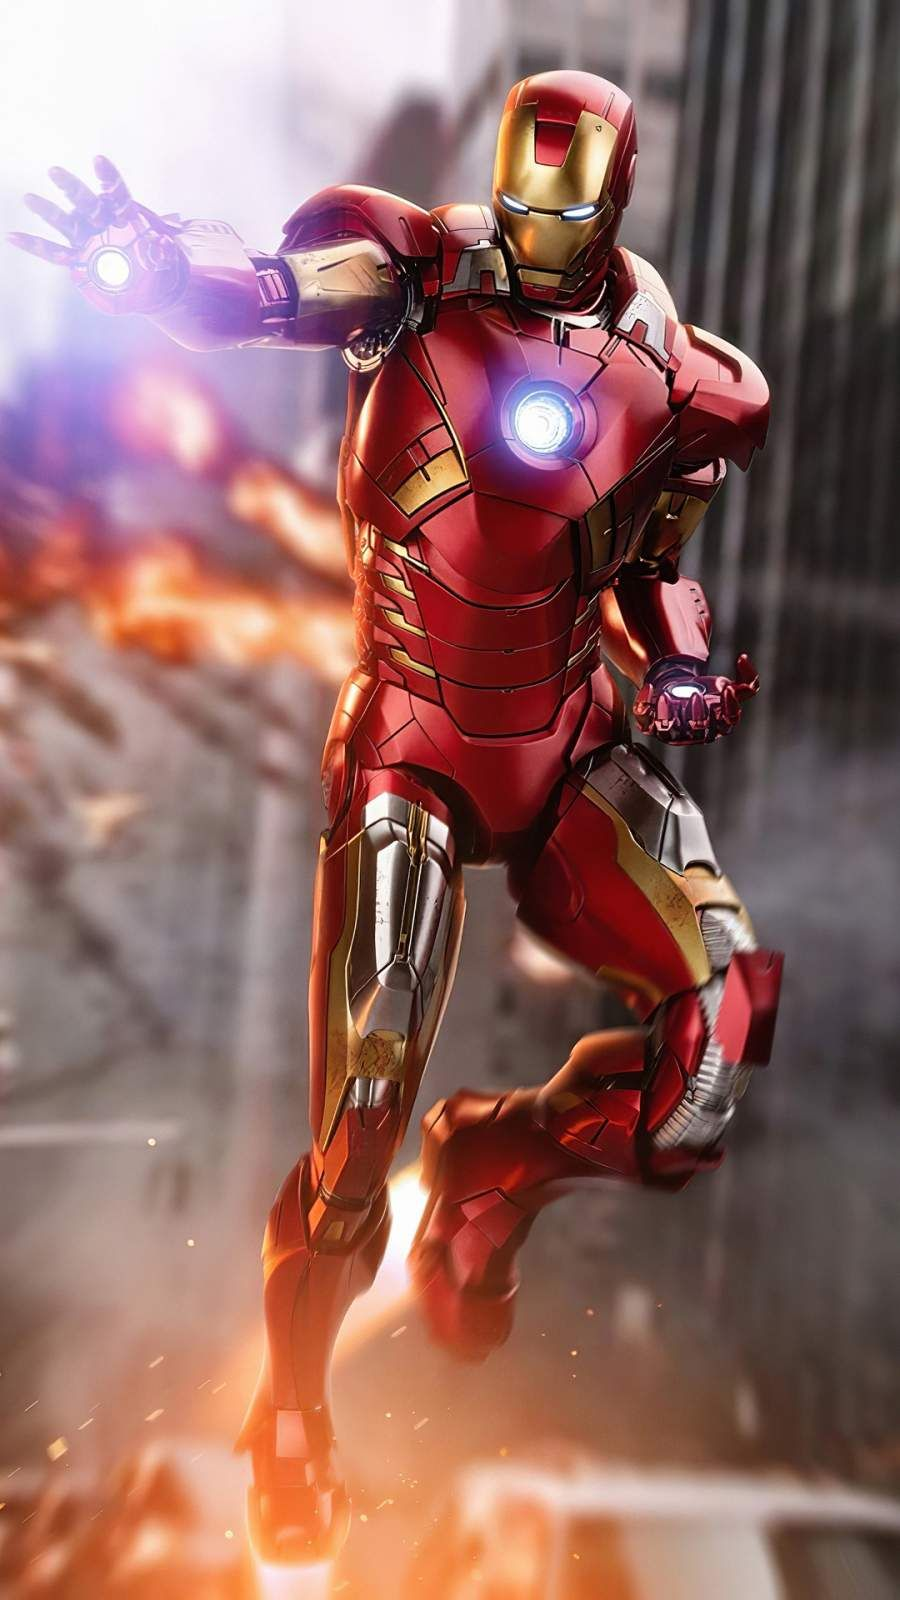 Iron Man 4k Wallpaper Iron Man Wallpaper Iron Man Hd Images Iron Man Hd Wallpaper